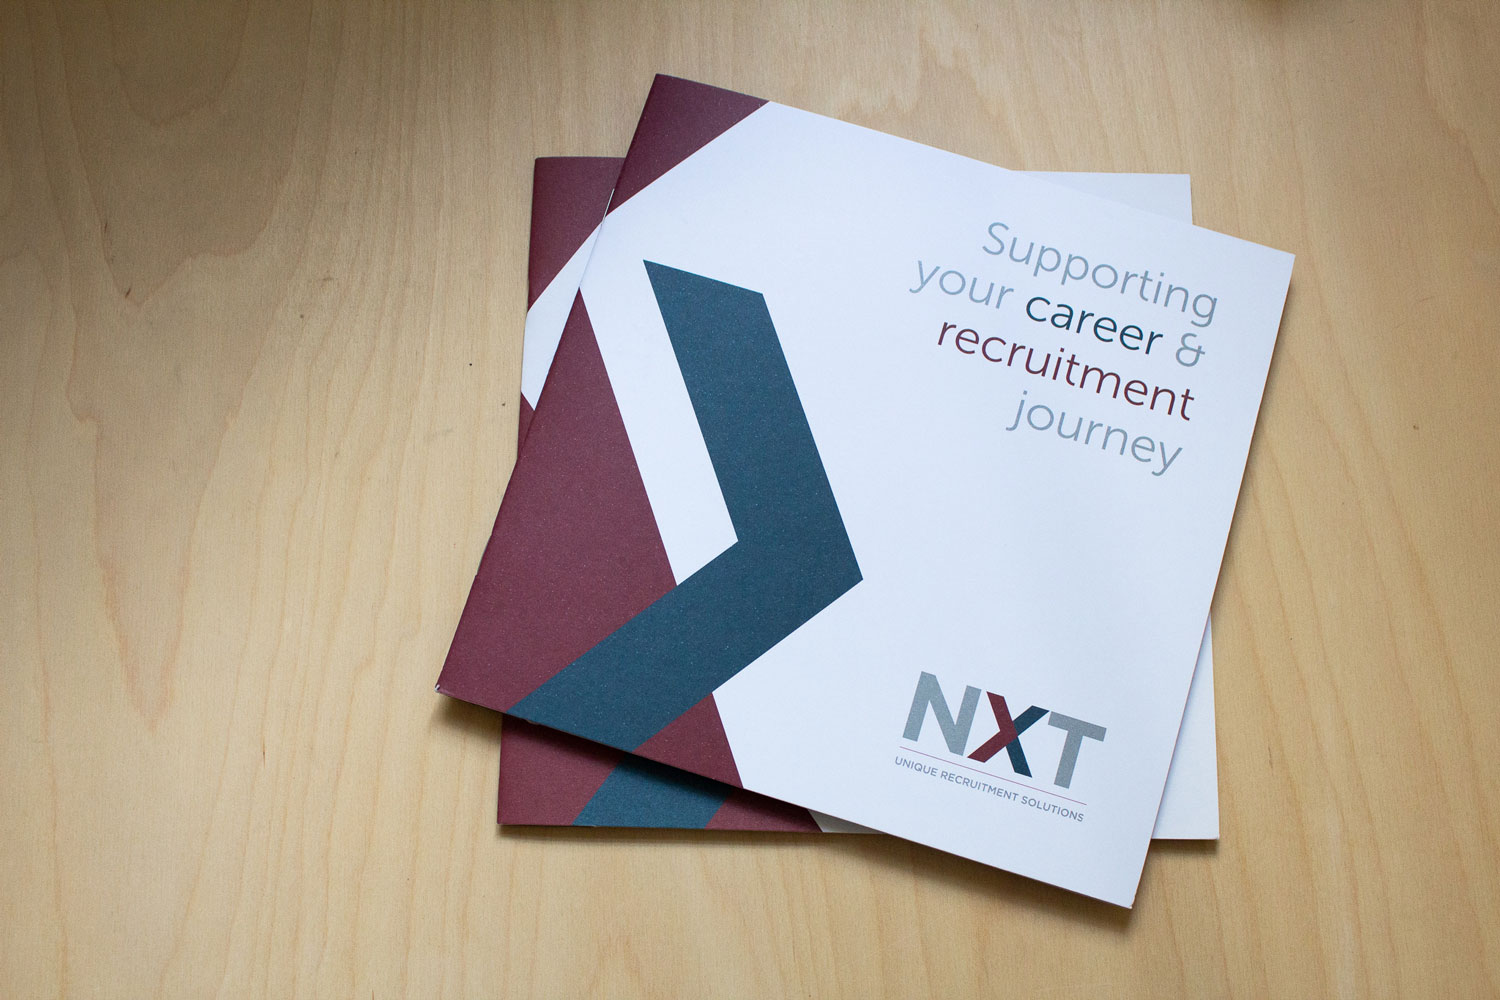 graphic design carlisle NXT by Geo 5